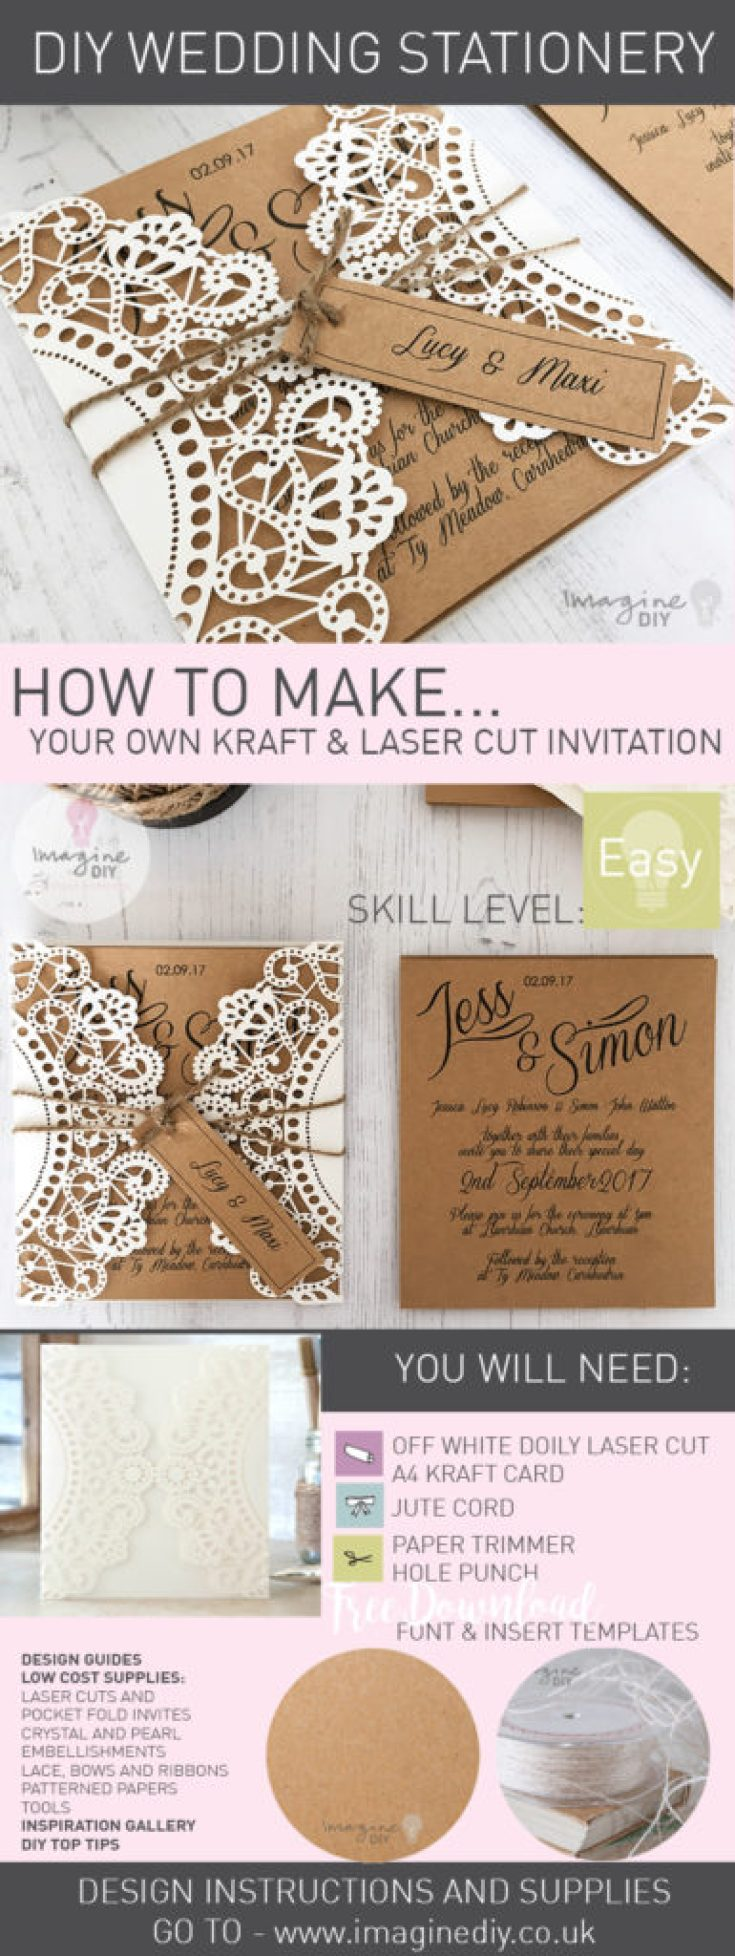 How To Make...Rustic Kraft and Laser Cut Invitation with Tag ...